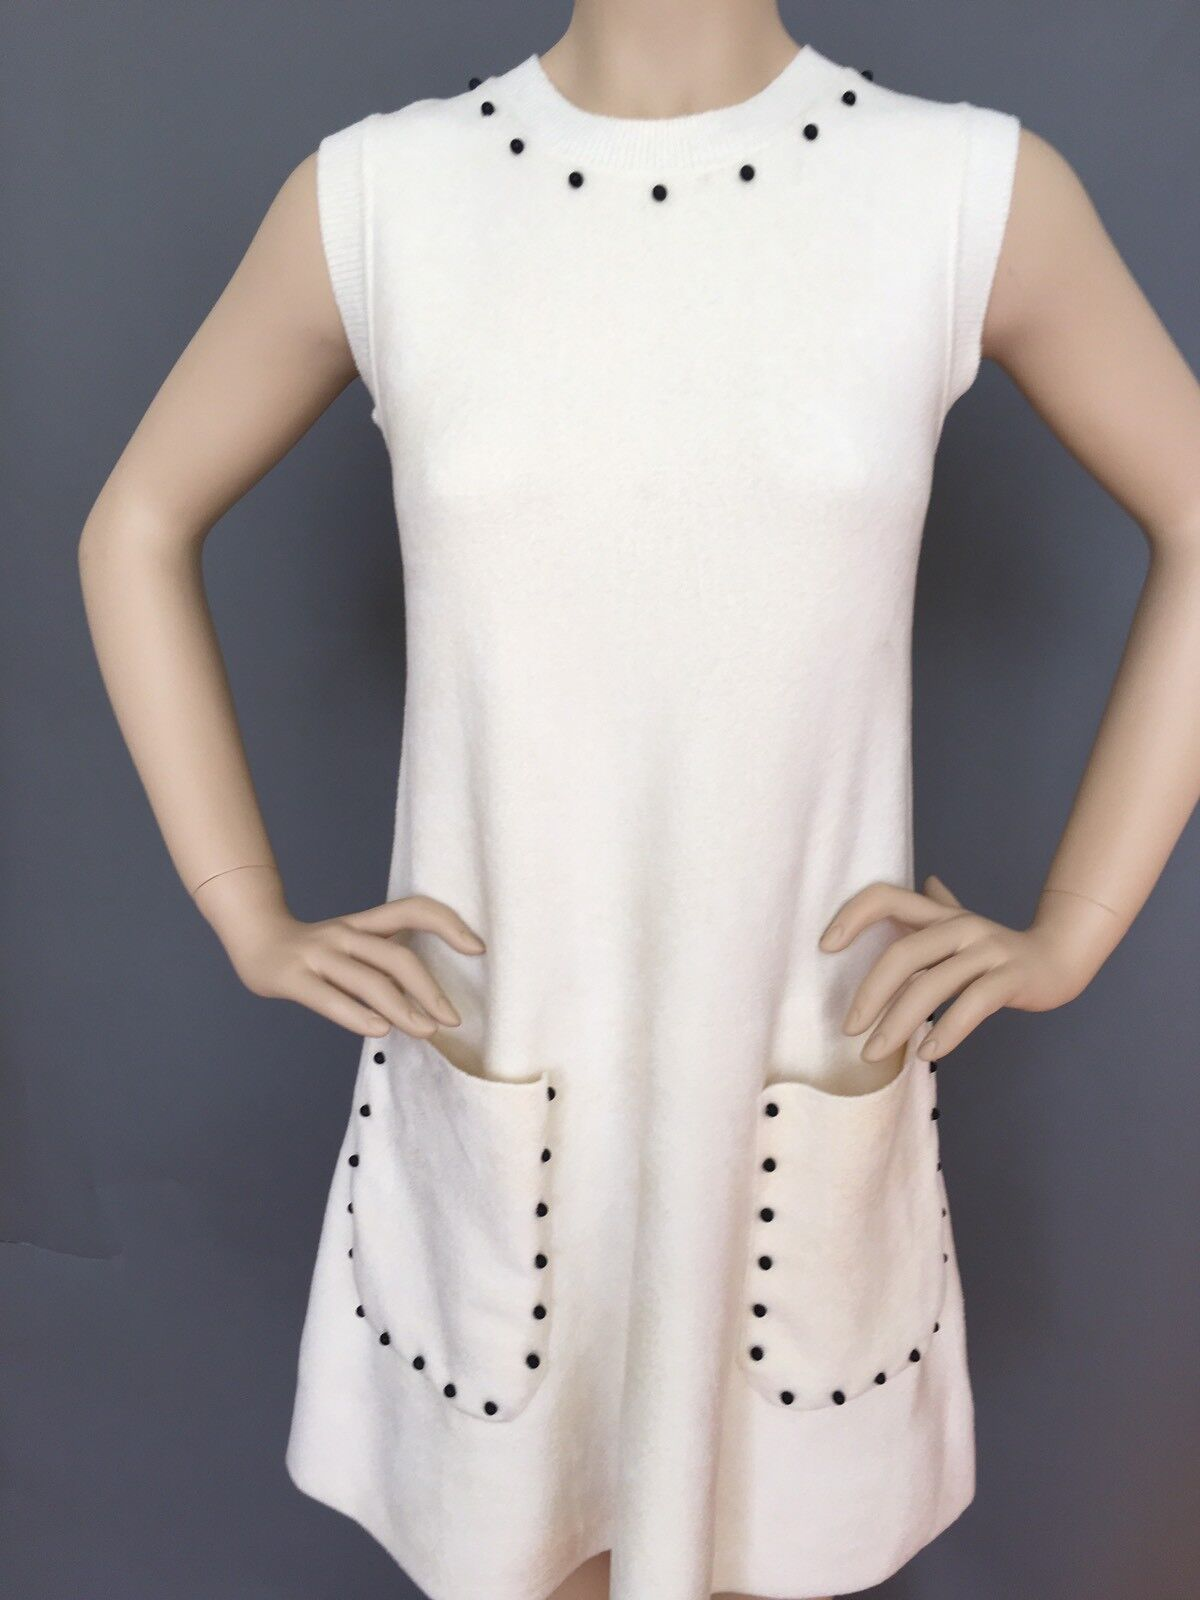 New Authentic Sportmax by Max Mara knitted short Dress-Tunic, Size M, MSRP   835